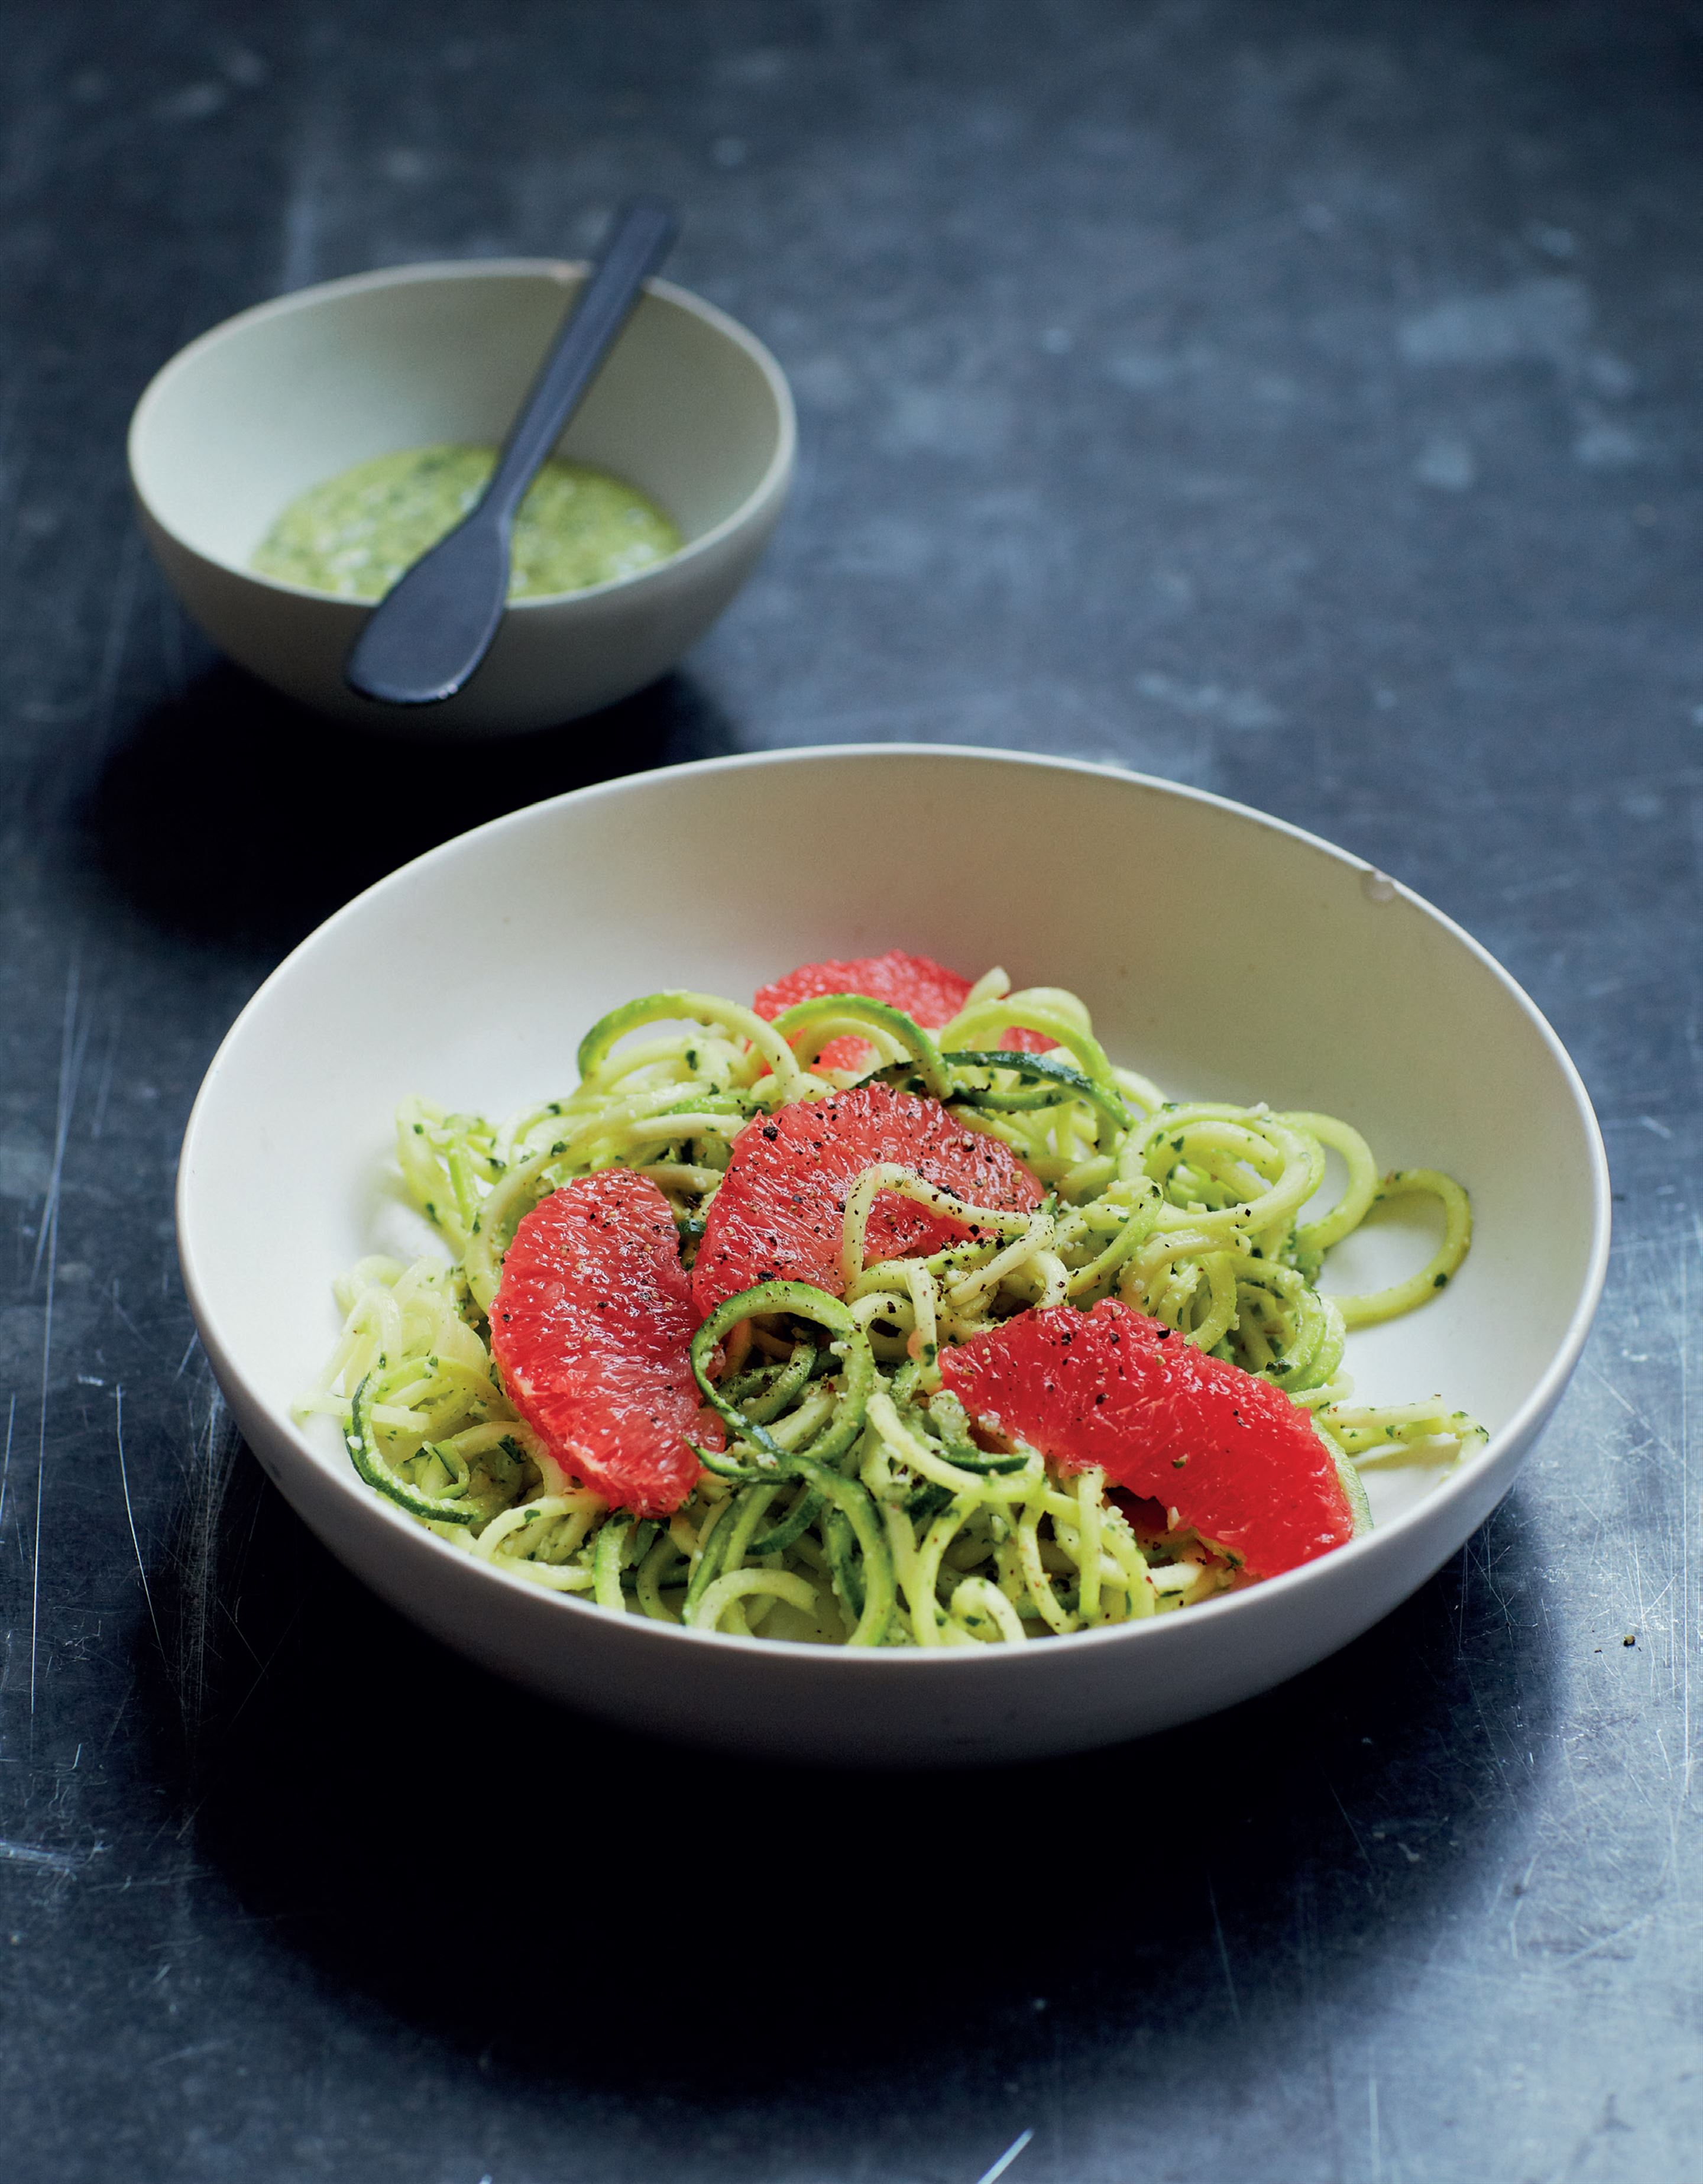 Courgetti spaghetti with grapefruit and brazil nut pesto